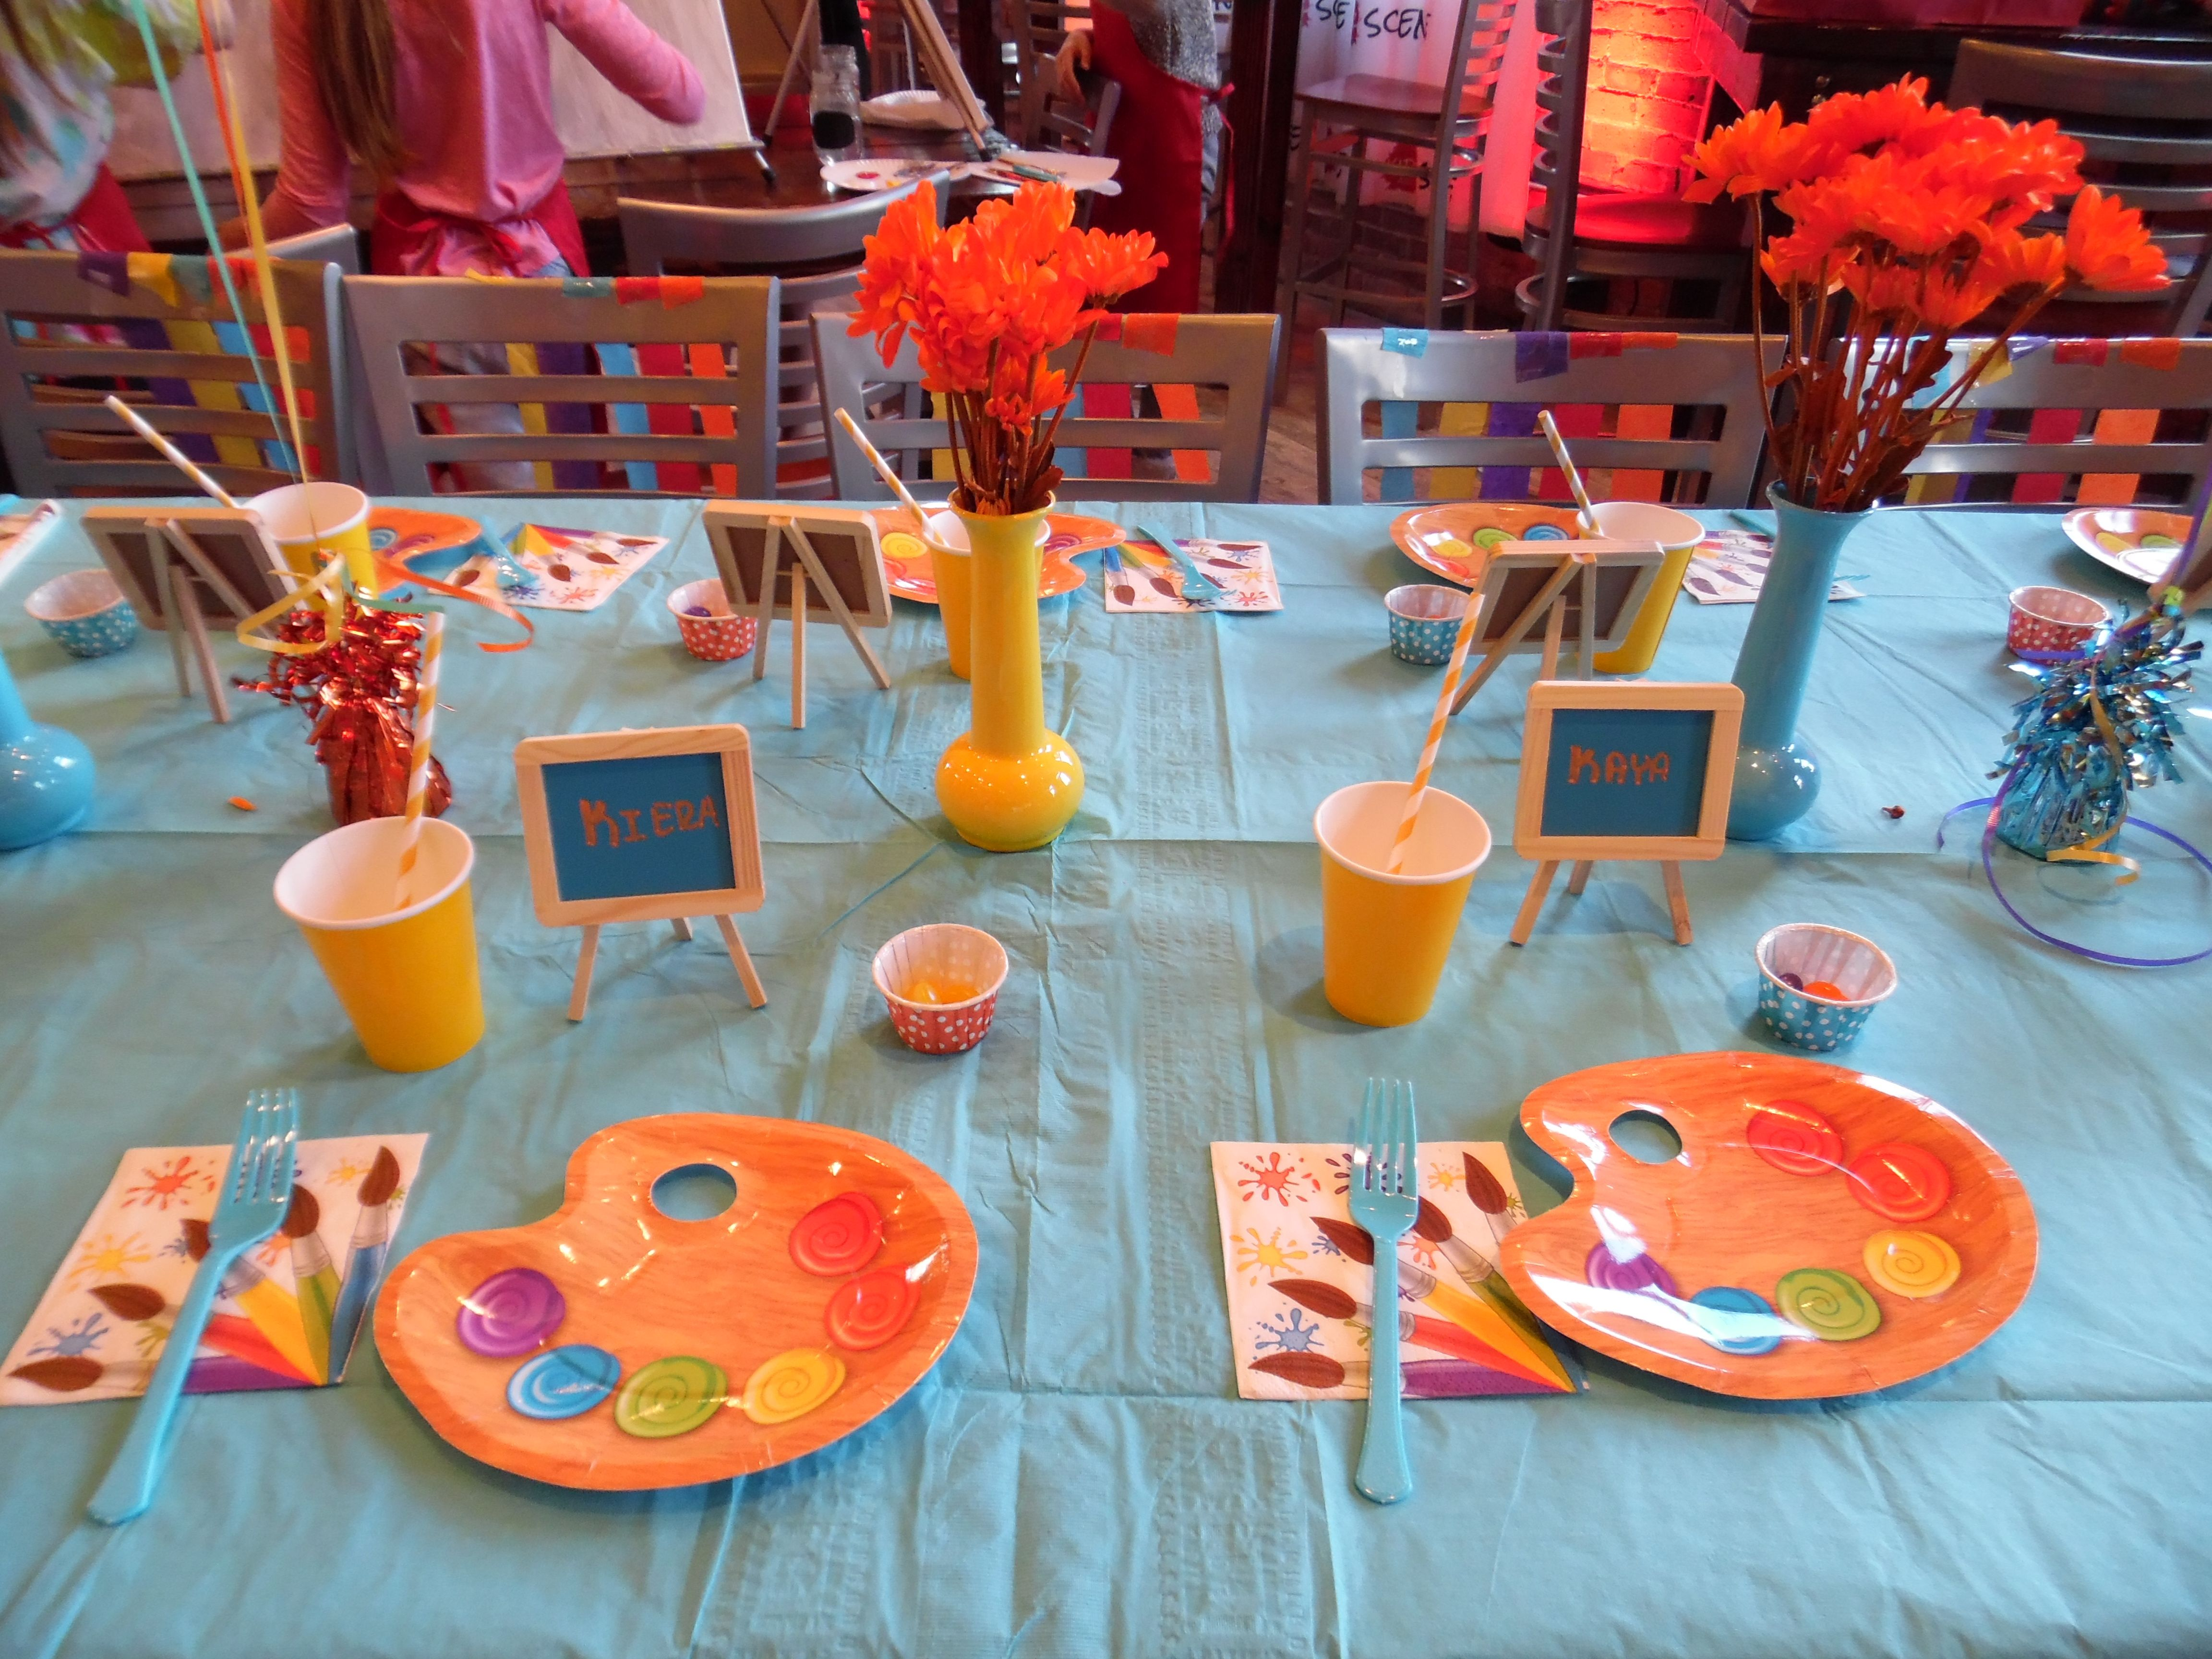 How to decorate a table for children